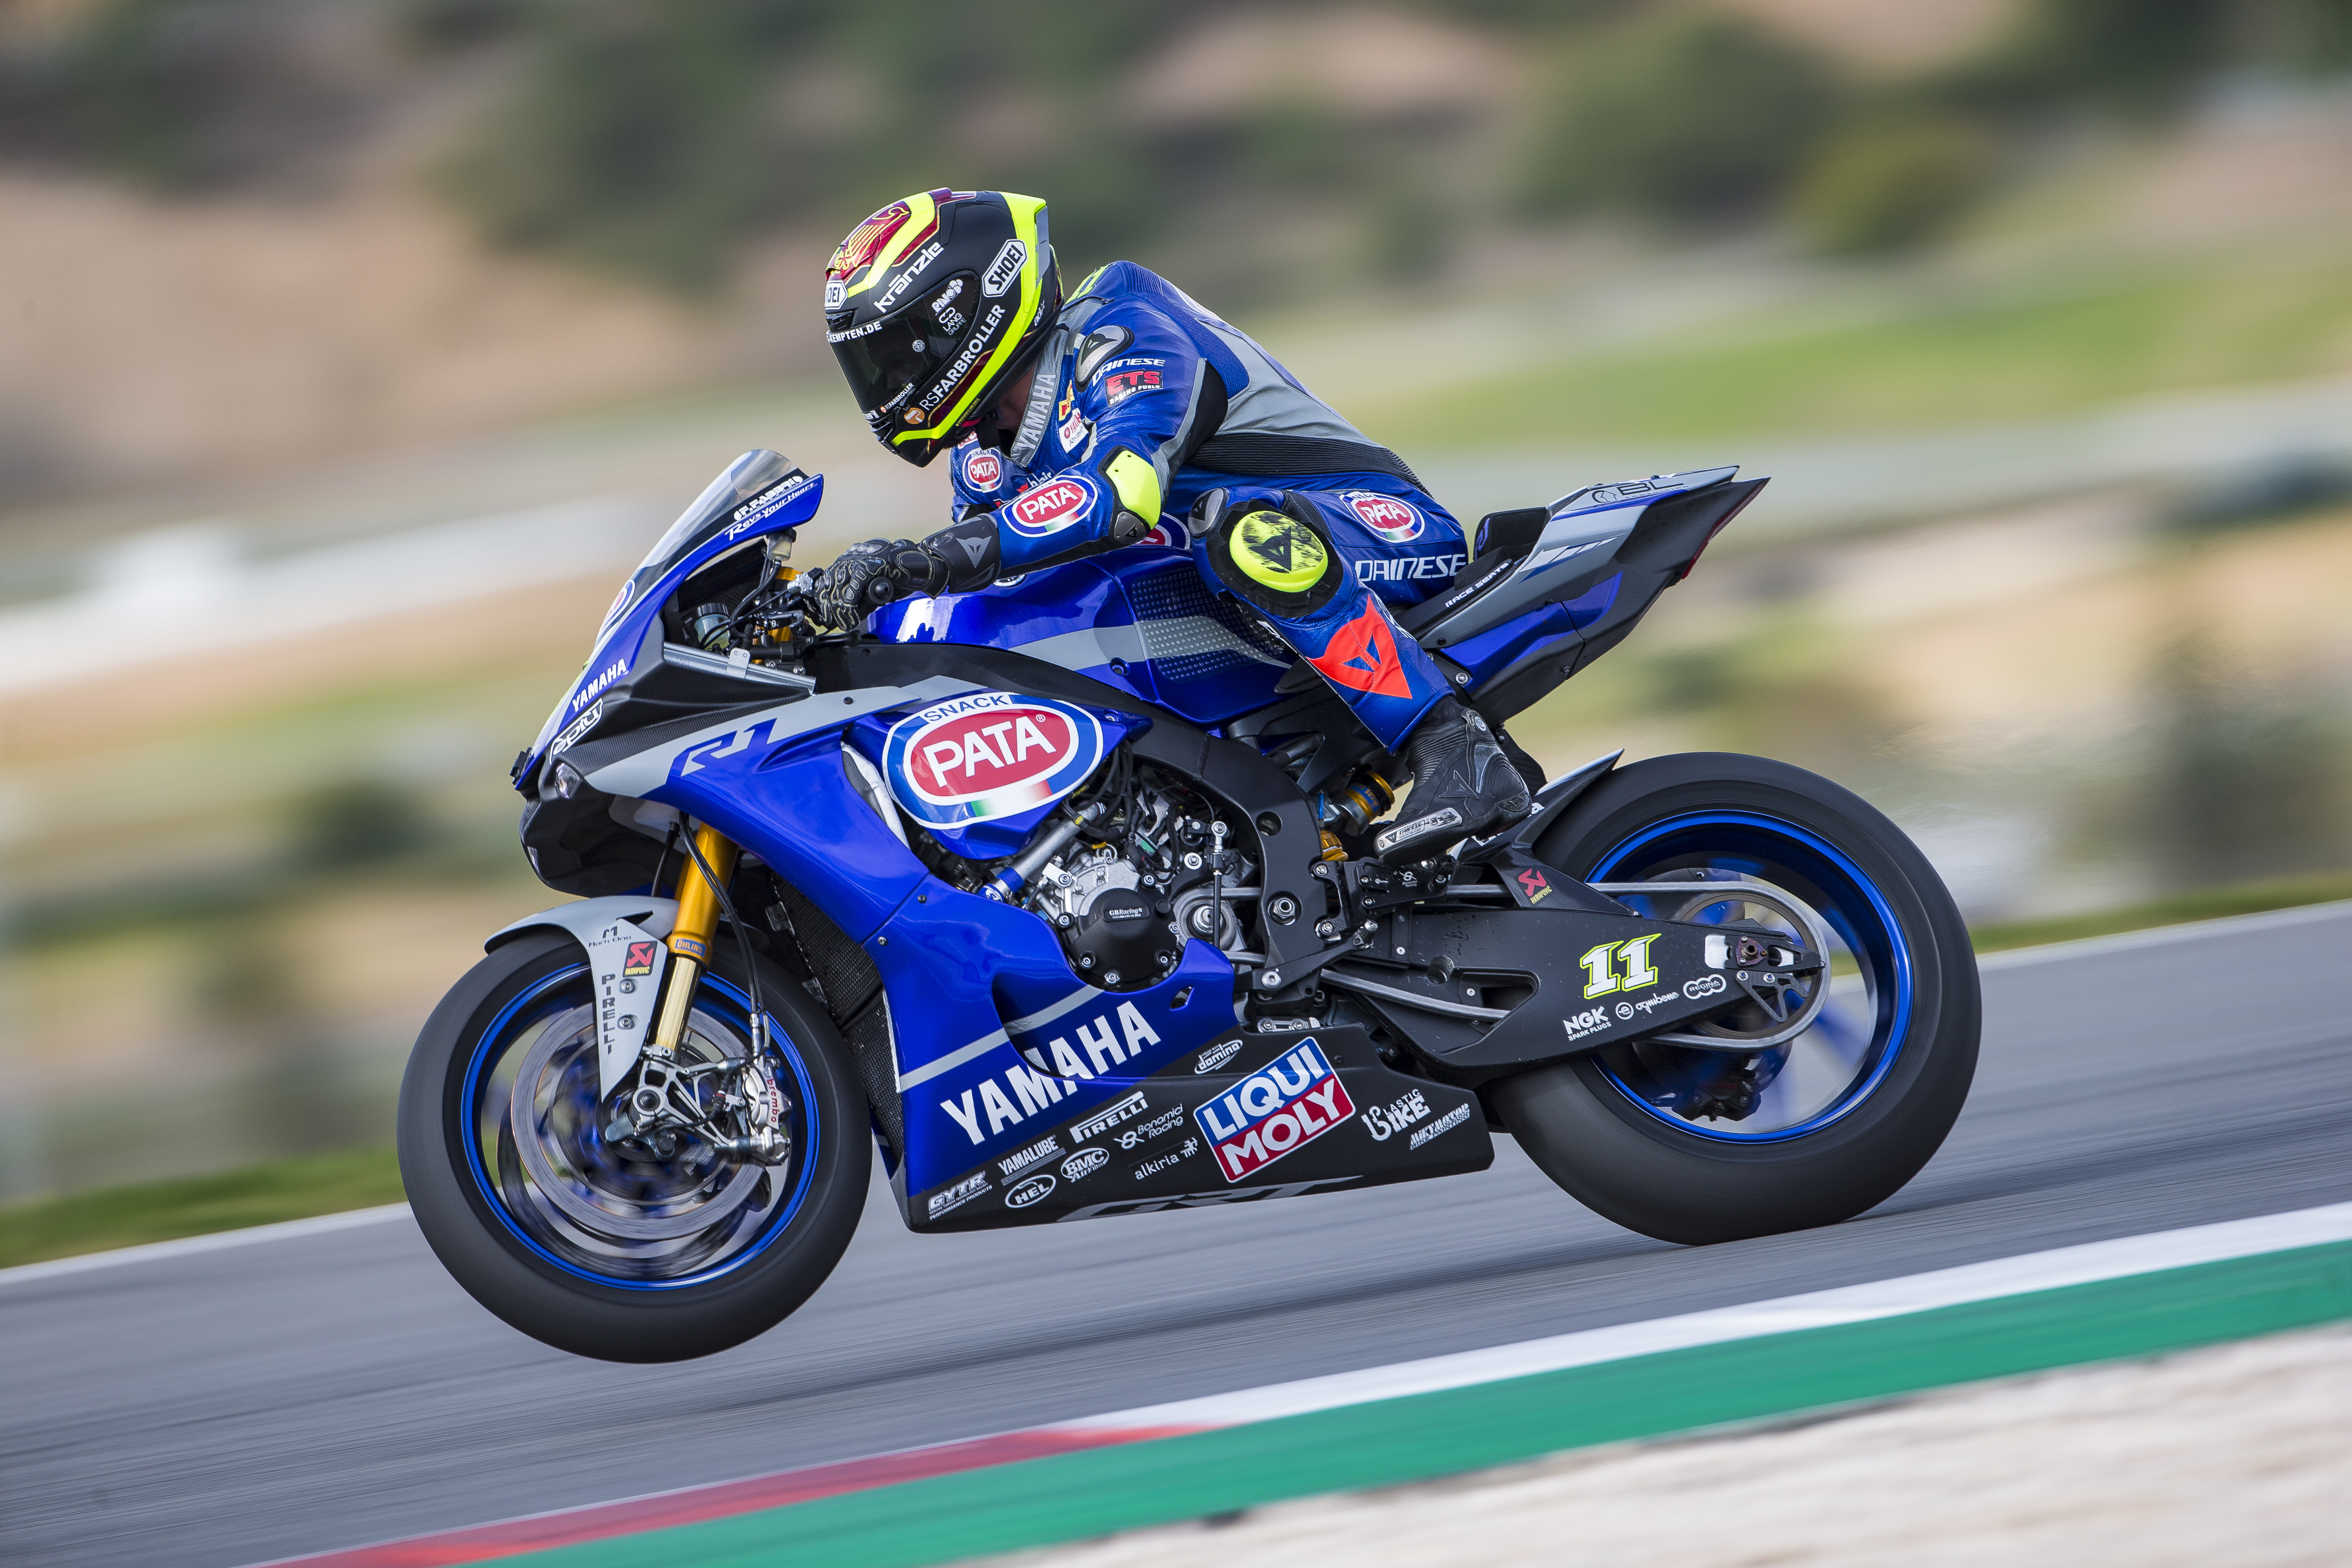 LIQUI MOLY with Yamaha in the Superbike World Championship: LIQUI MOLY